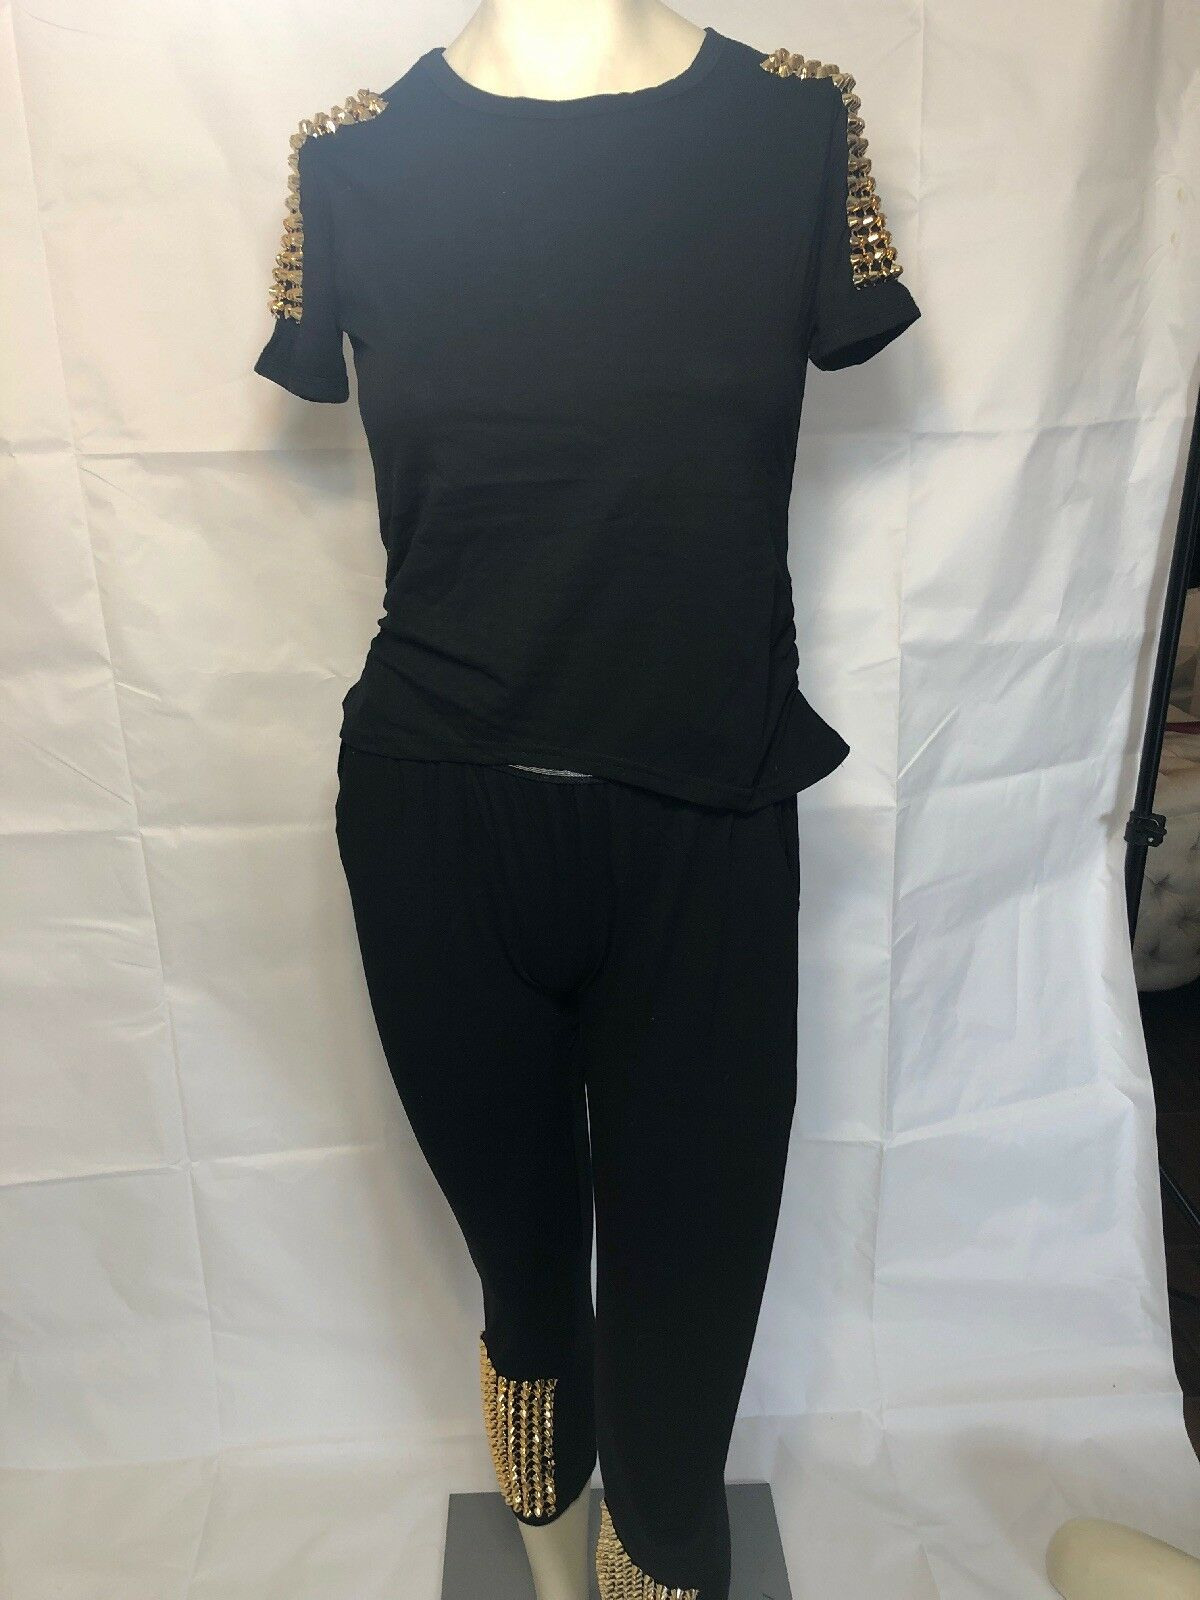 2 Piece And gold Studded Leggings And Crop Top